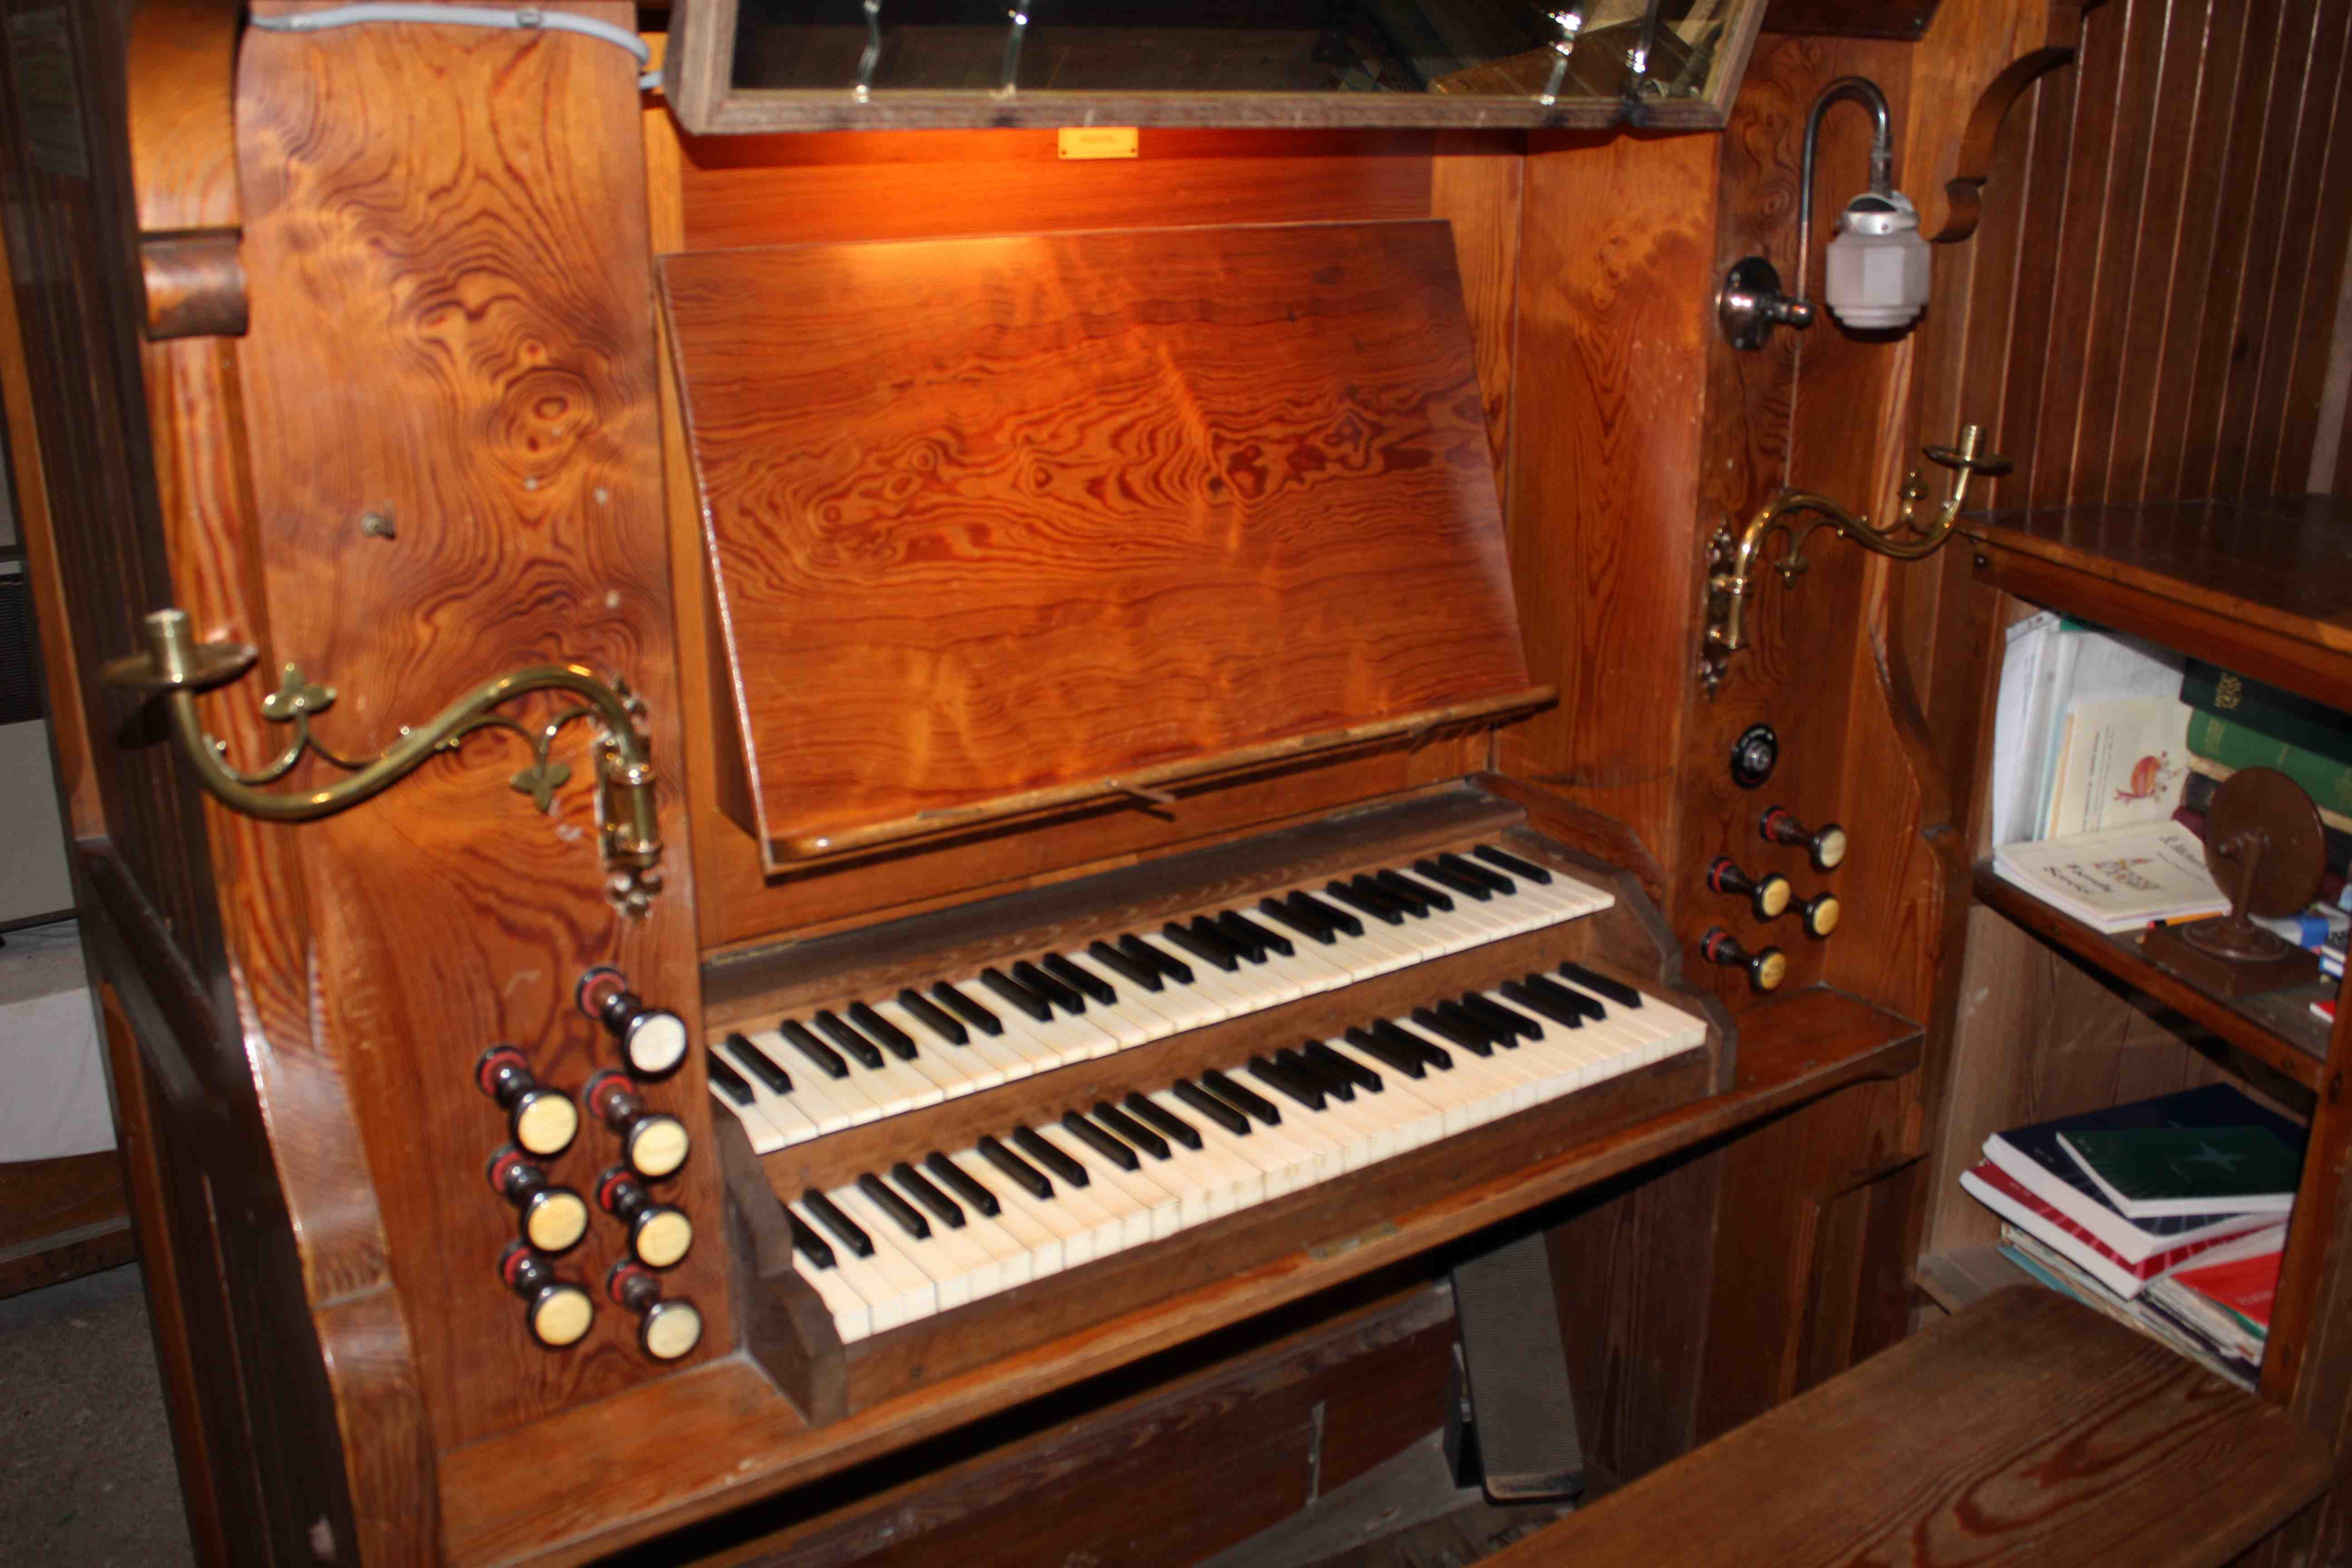 Butcombe Parish Church organ, which Milford played